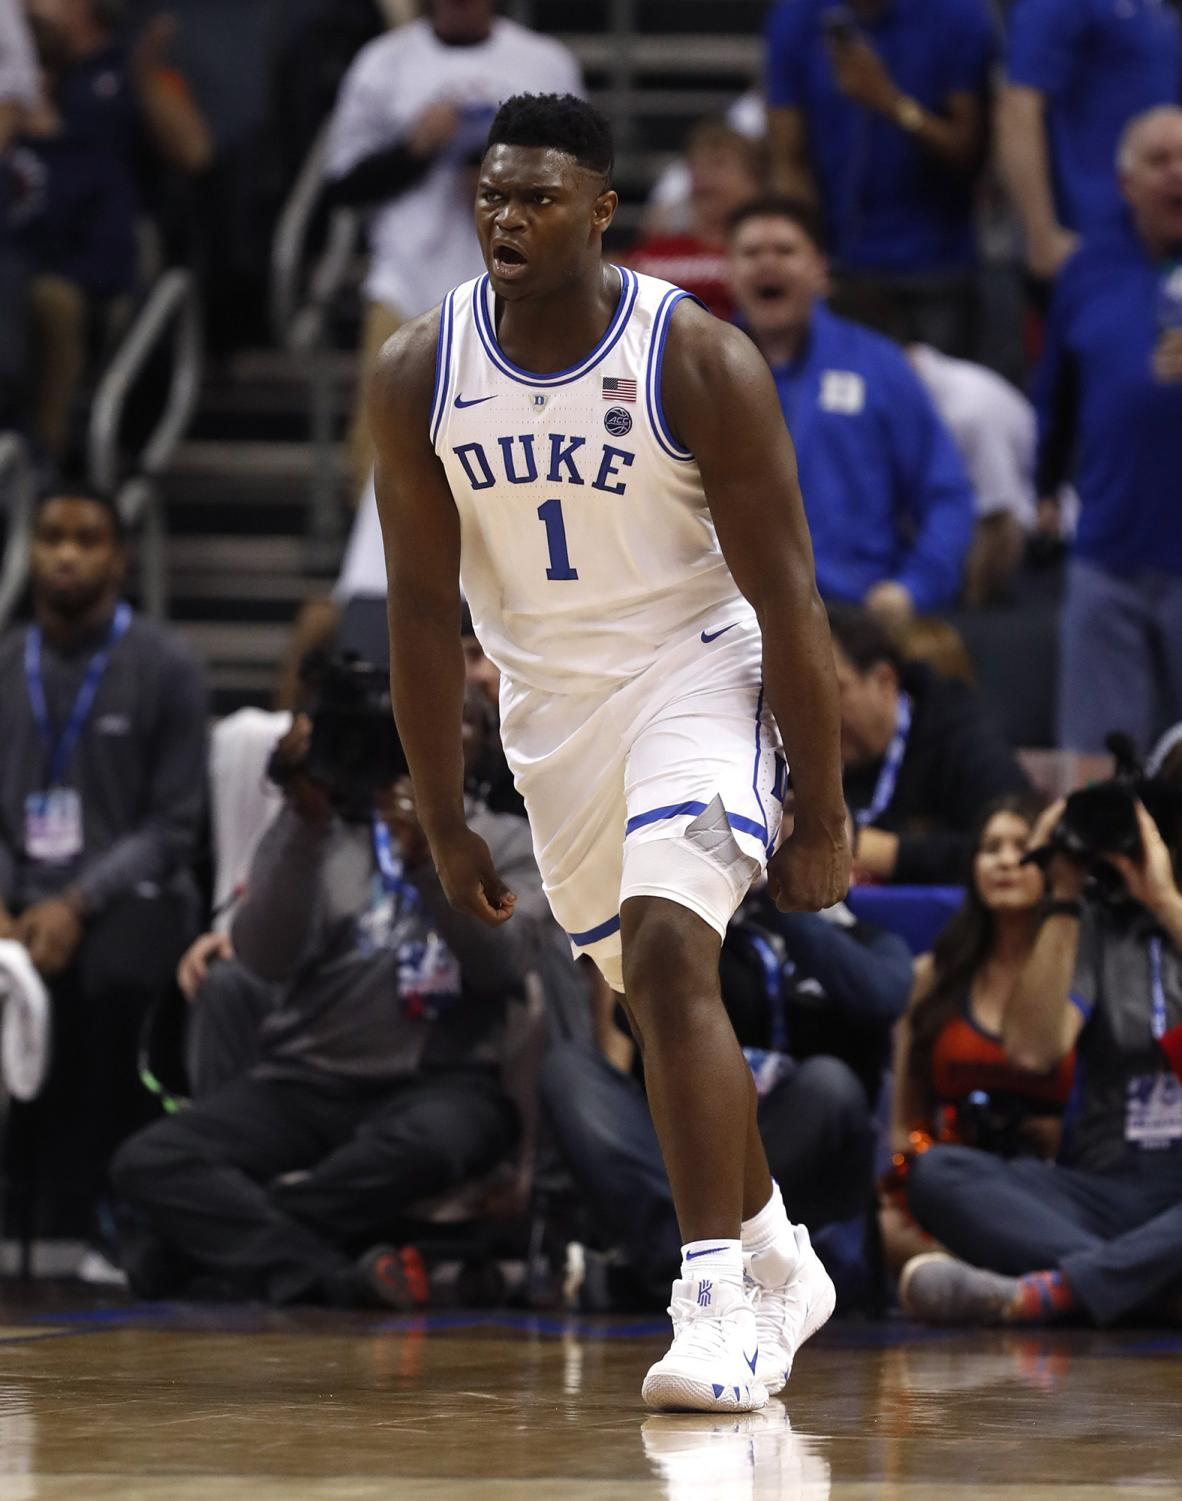 Duke's Zion Williamson (1) celebrates after slamming in two during the first half against Syracuse in the quarterfinals of the ACC Tournament at the Specturm Center in Charlotte, N.C., on Thursday, March 14, 2019. (Ethan Hyman/Raleigh News & Observer/TNS)